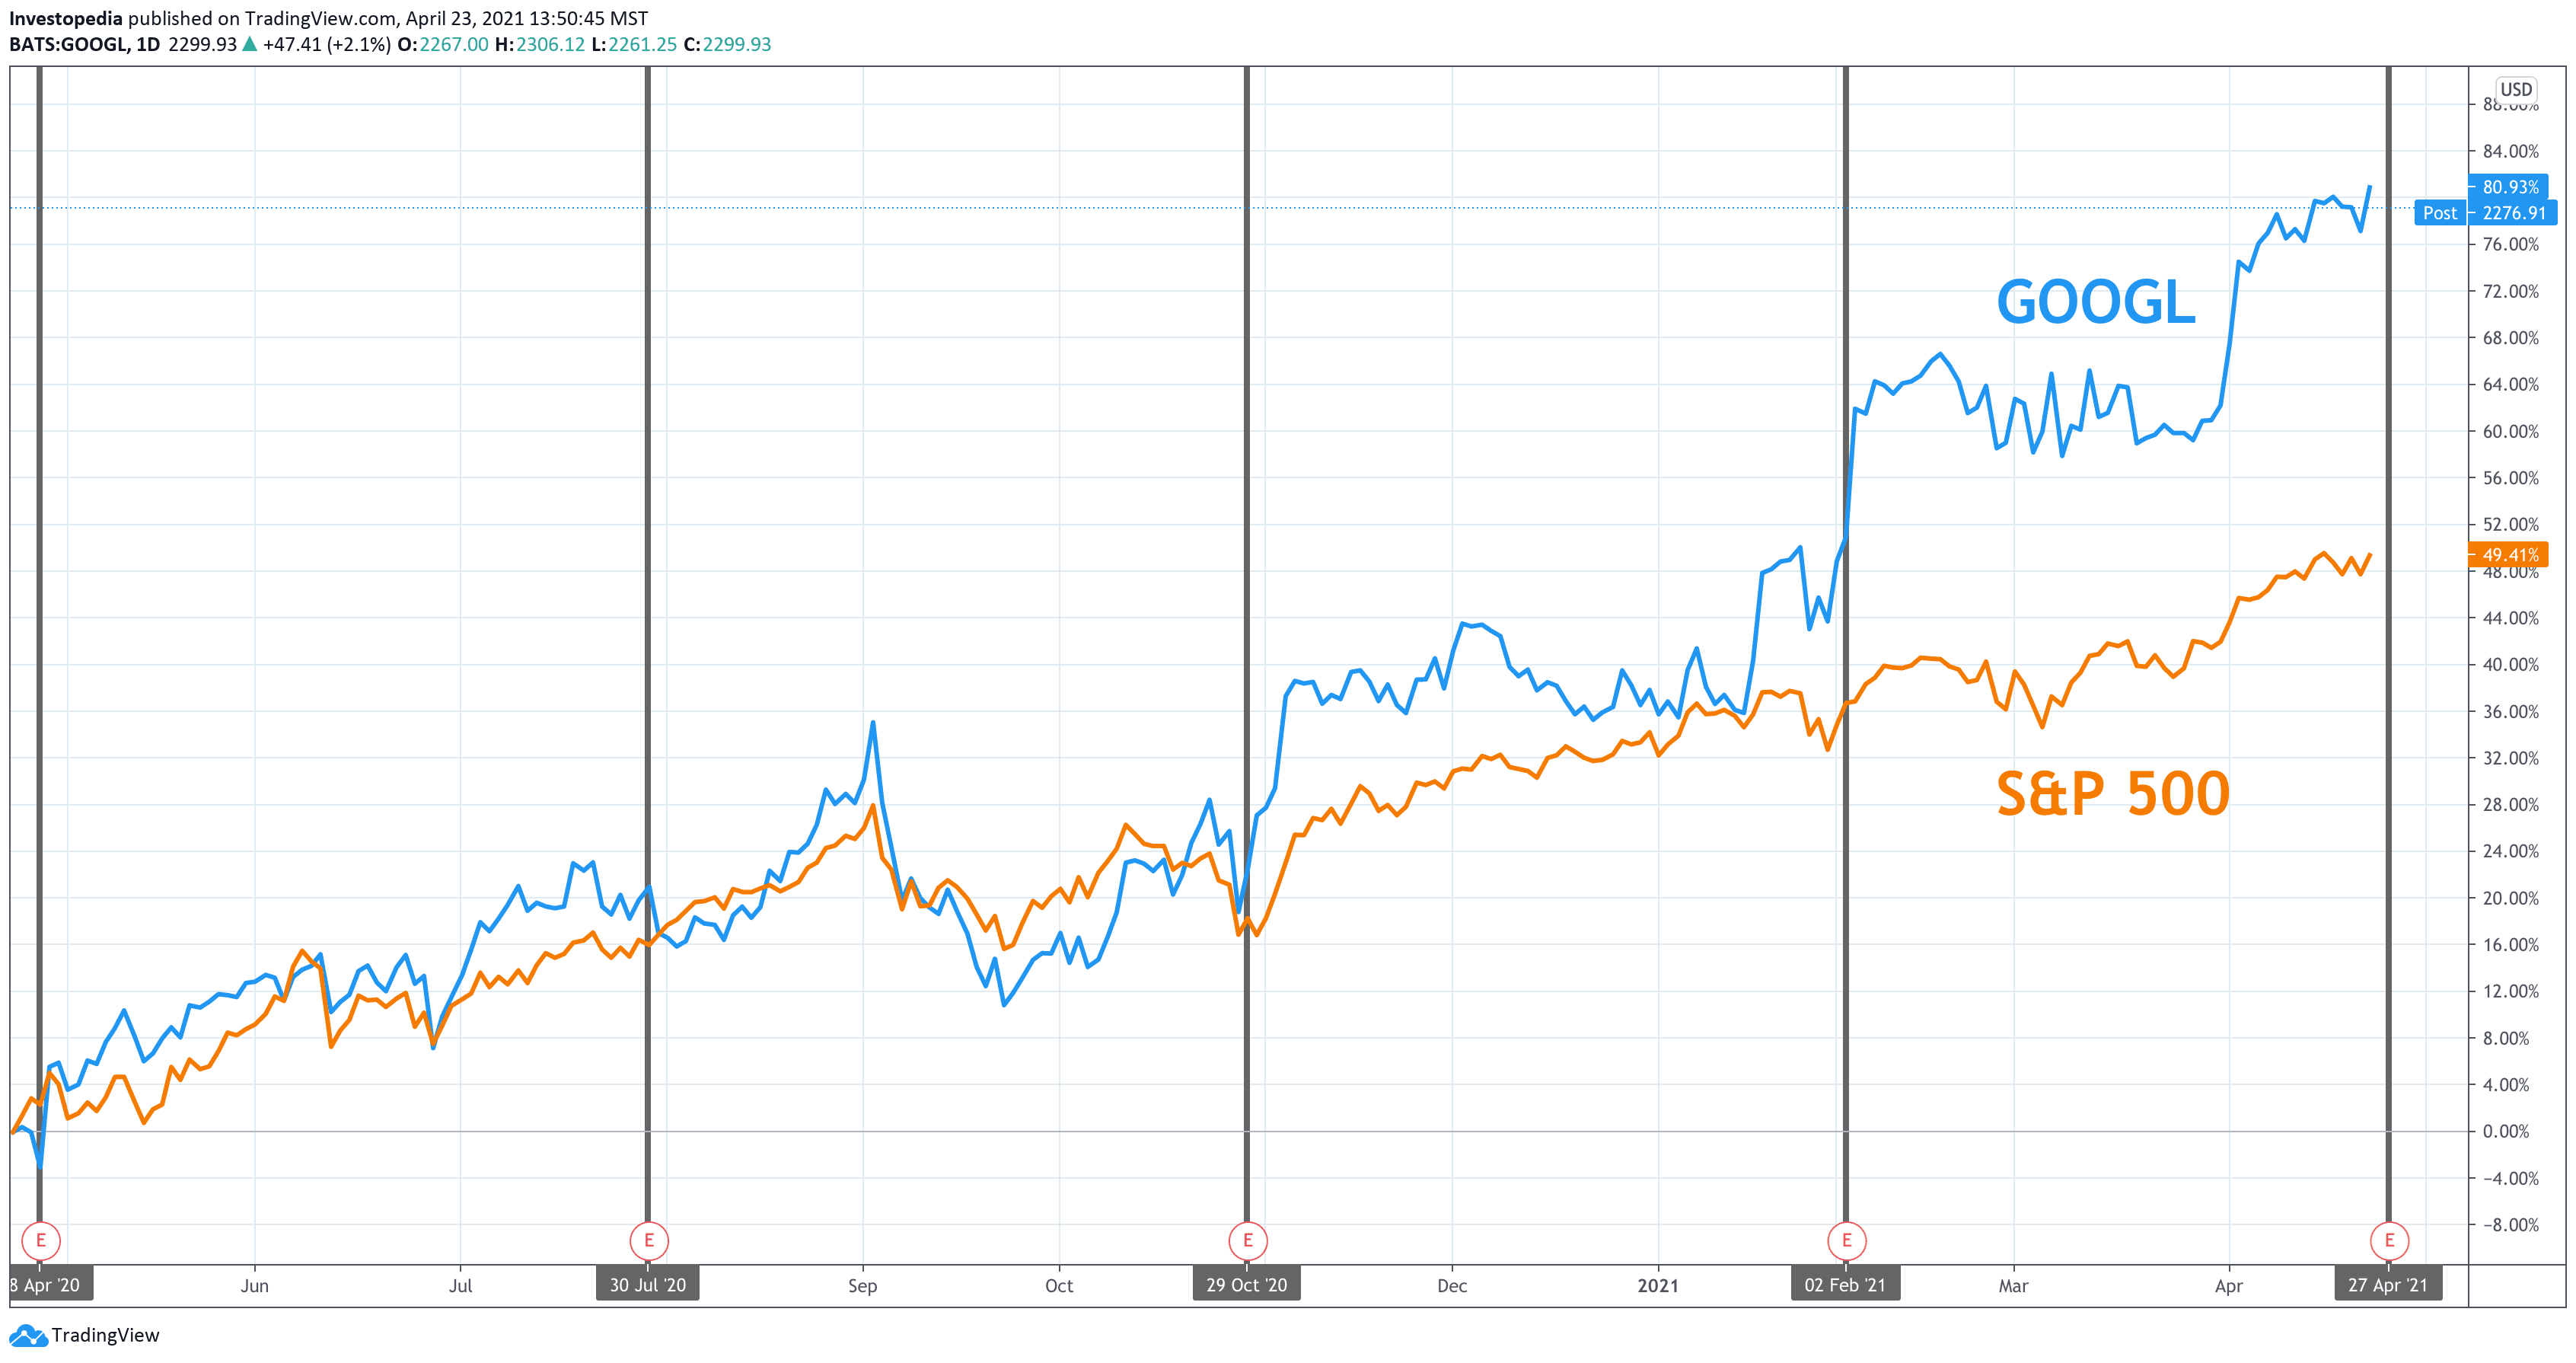 One Year Total Return for S&P 500 and Google (Alphabet)